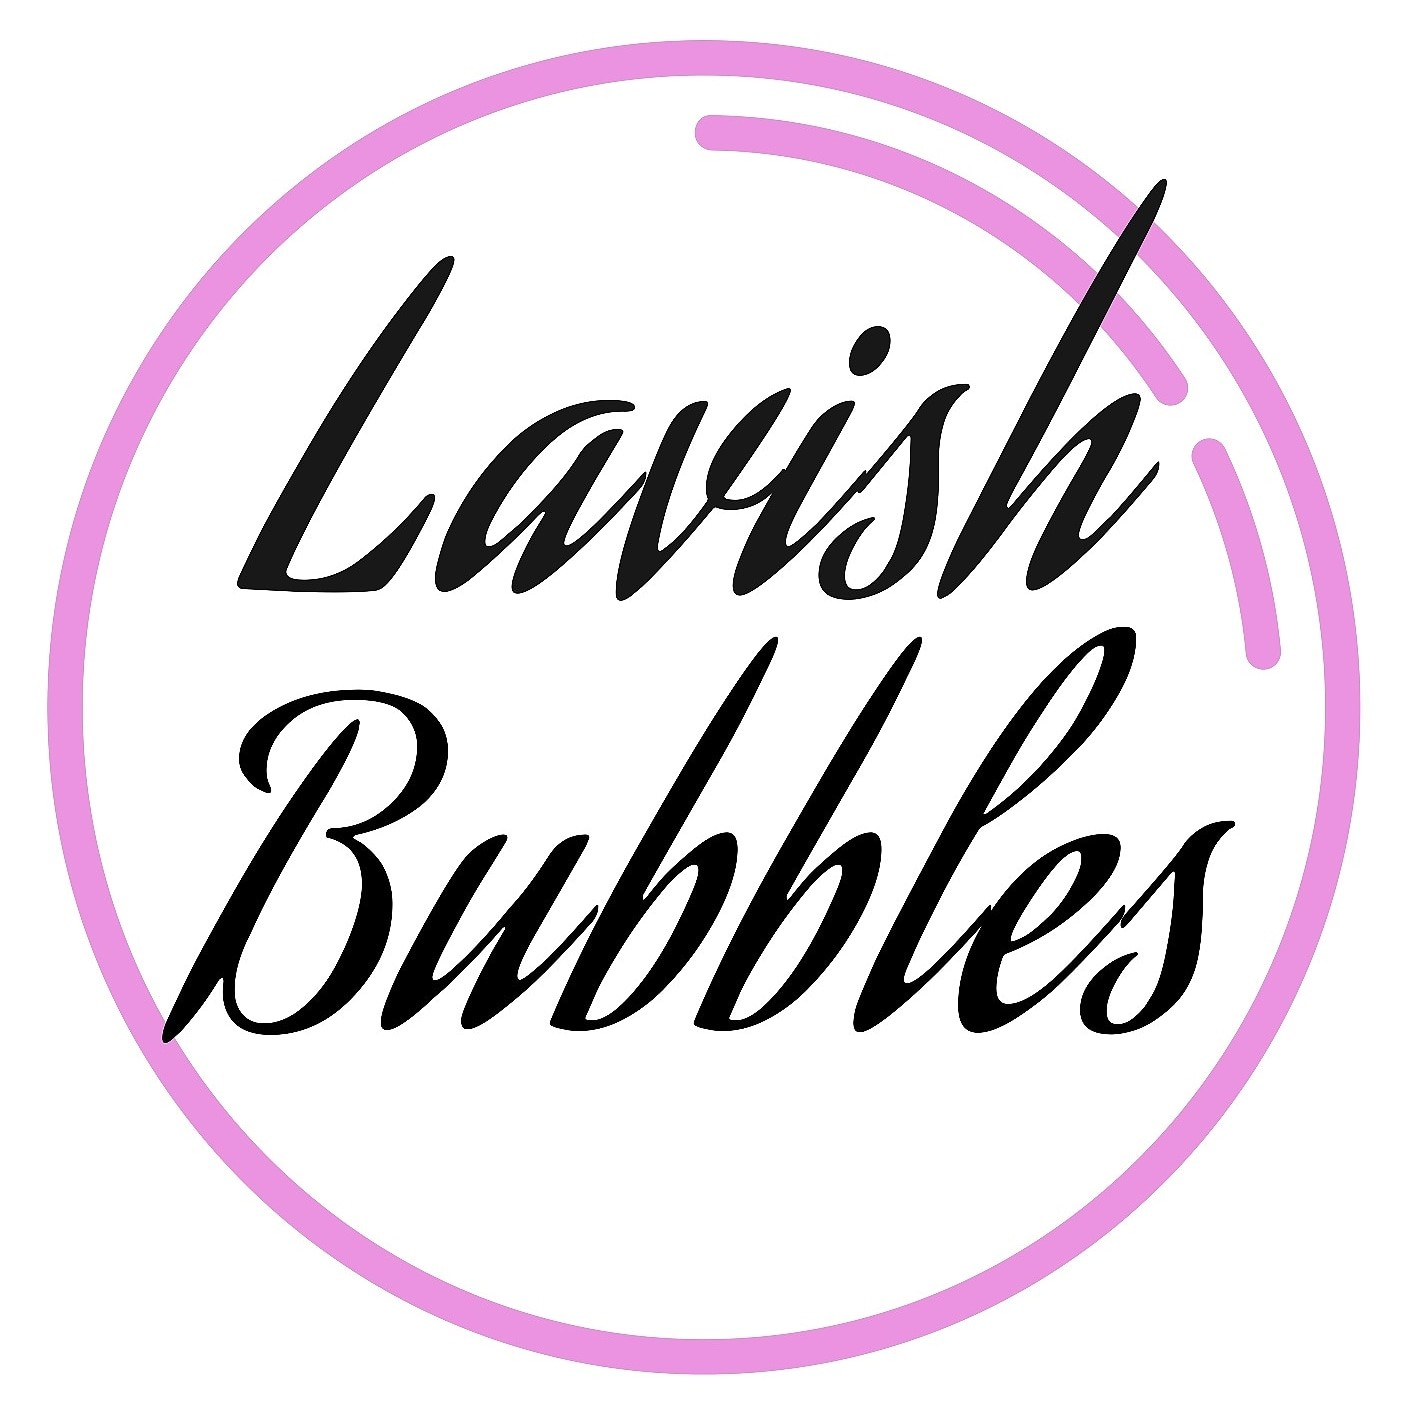 Specializing in Luxury Bath and Body Products! from Lavish Bubbles